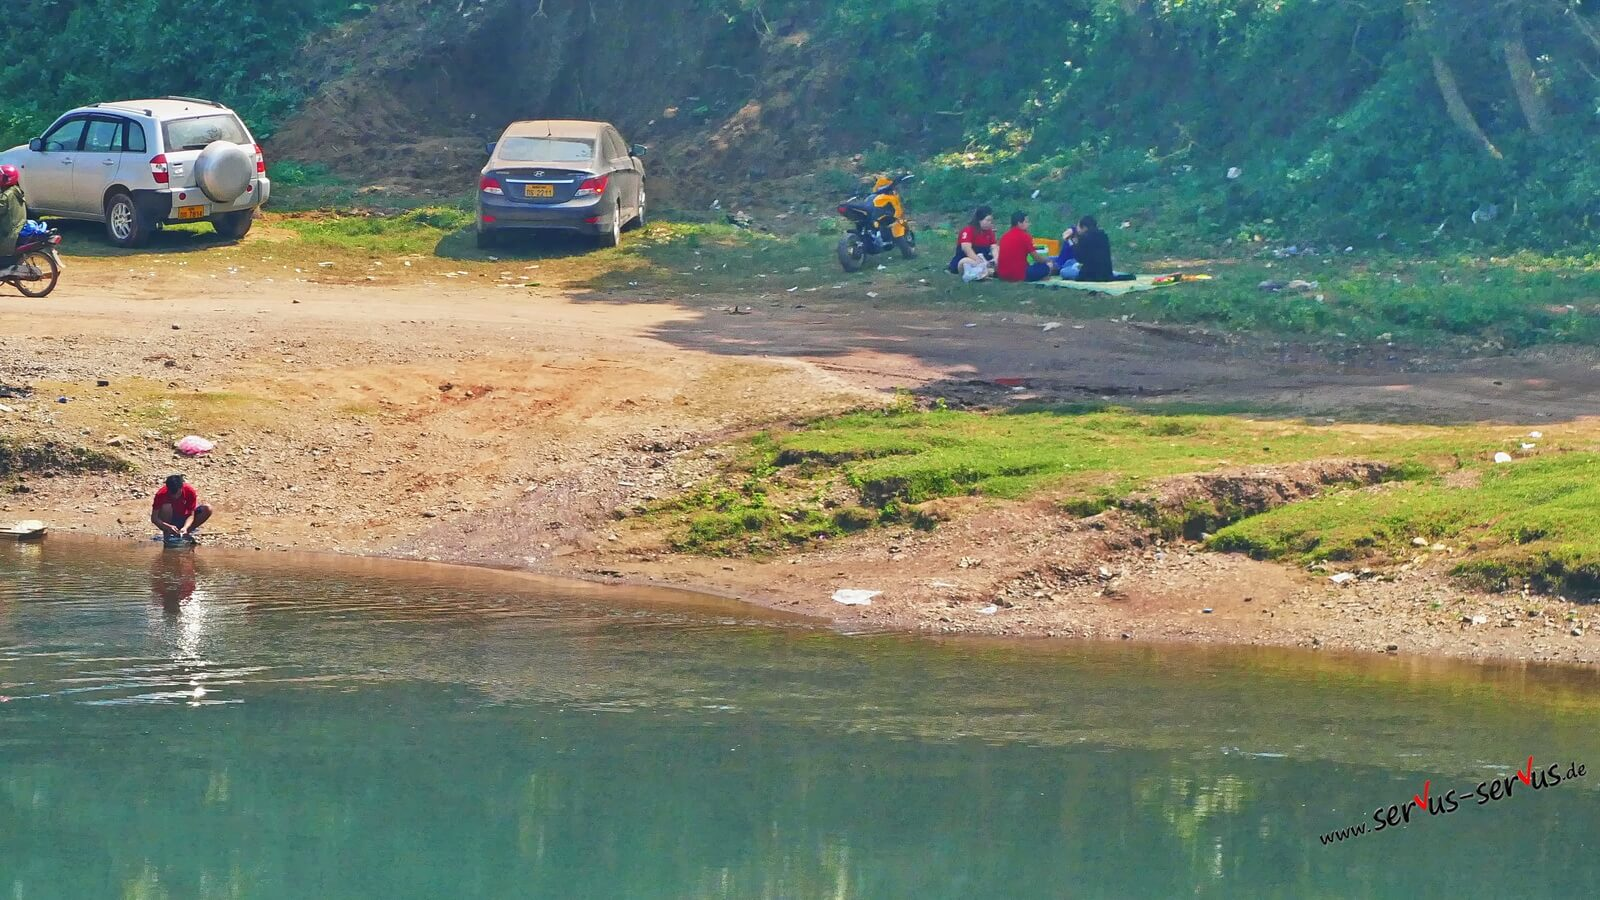 Picknick am Fluss bei Vang Vieng